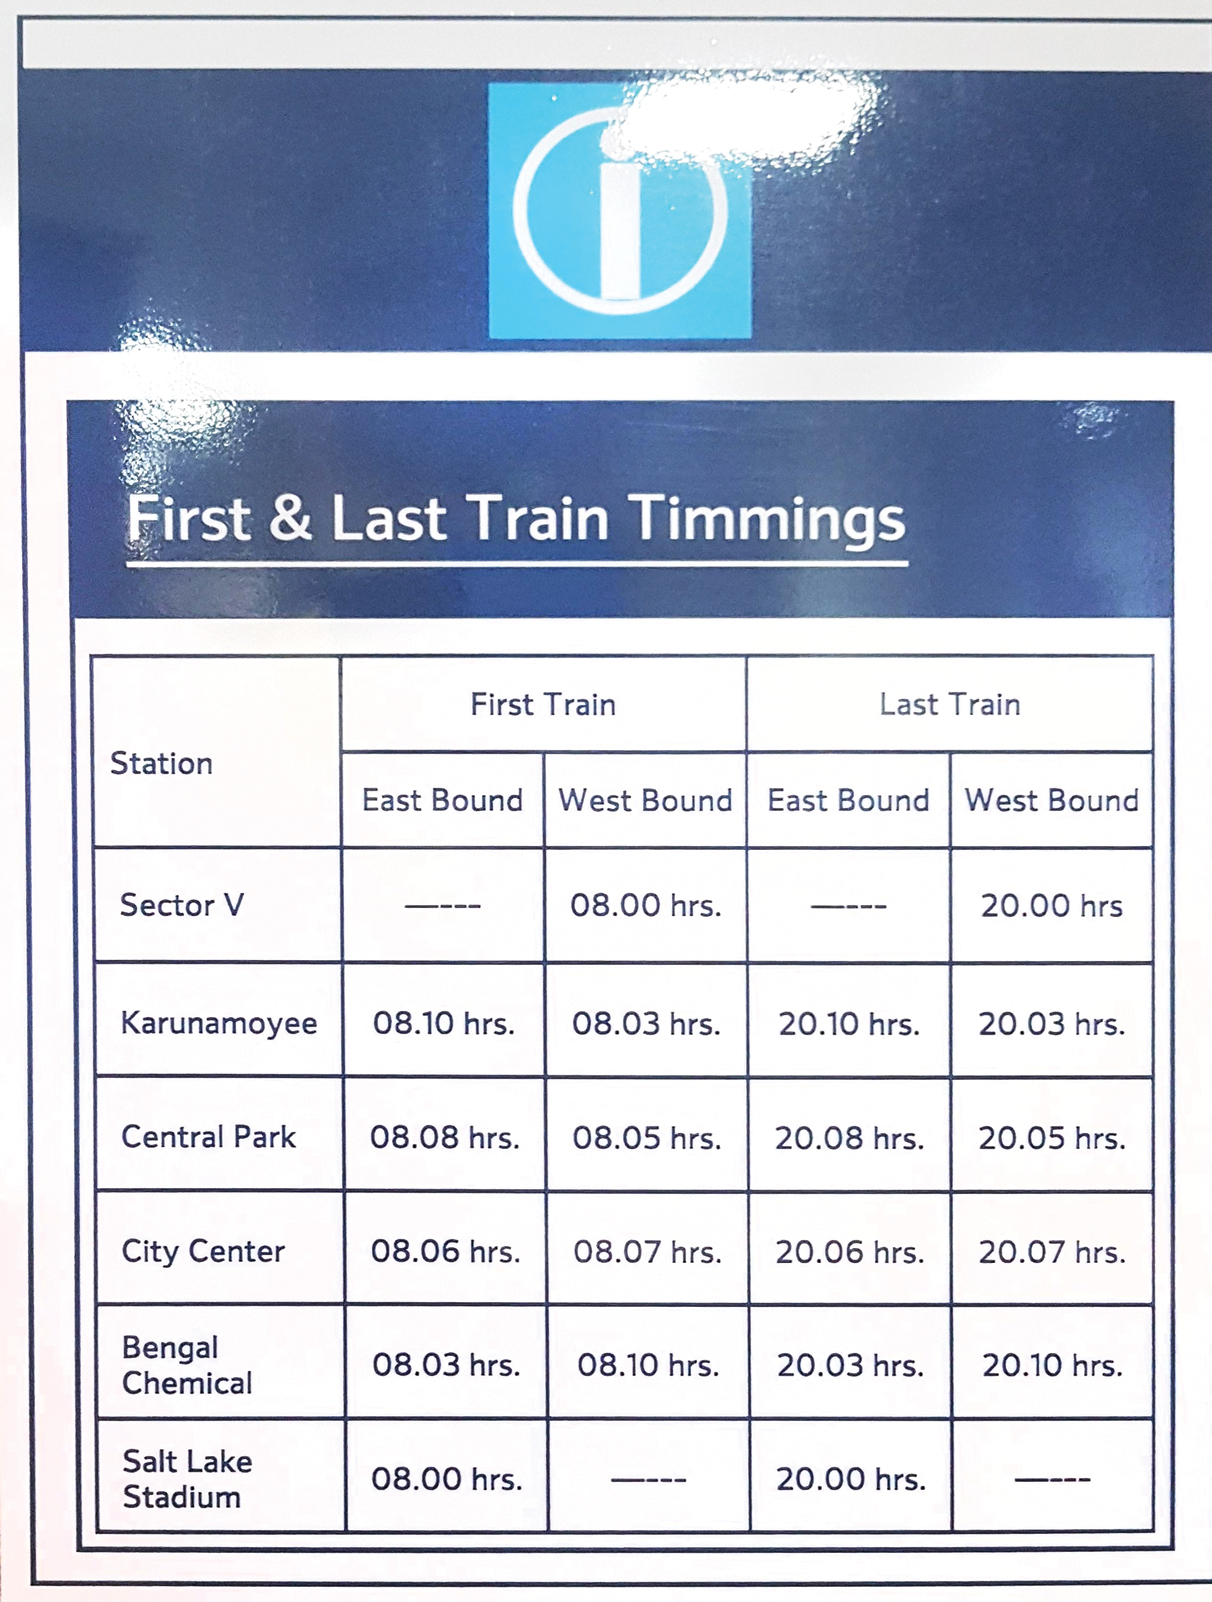 The schedule for the first and last trains from different stations.